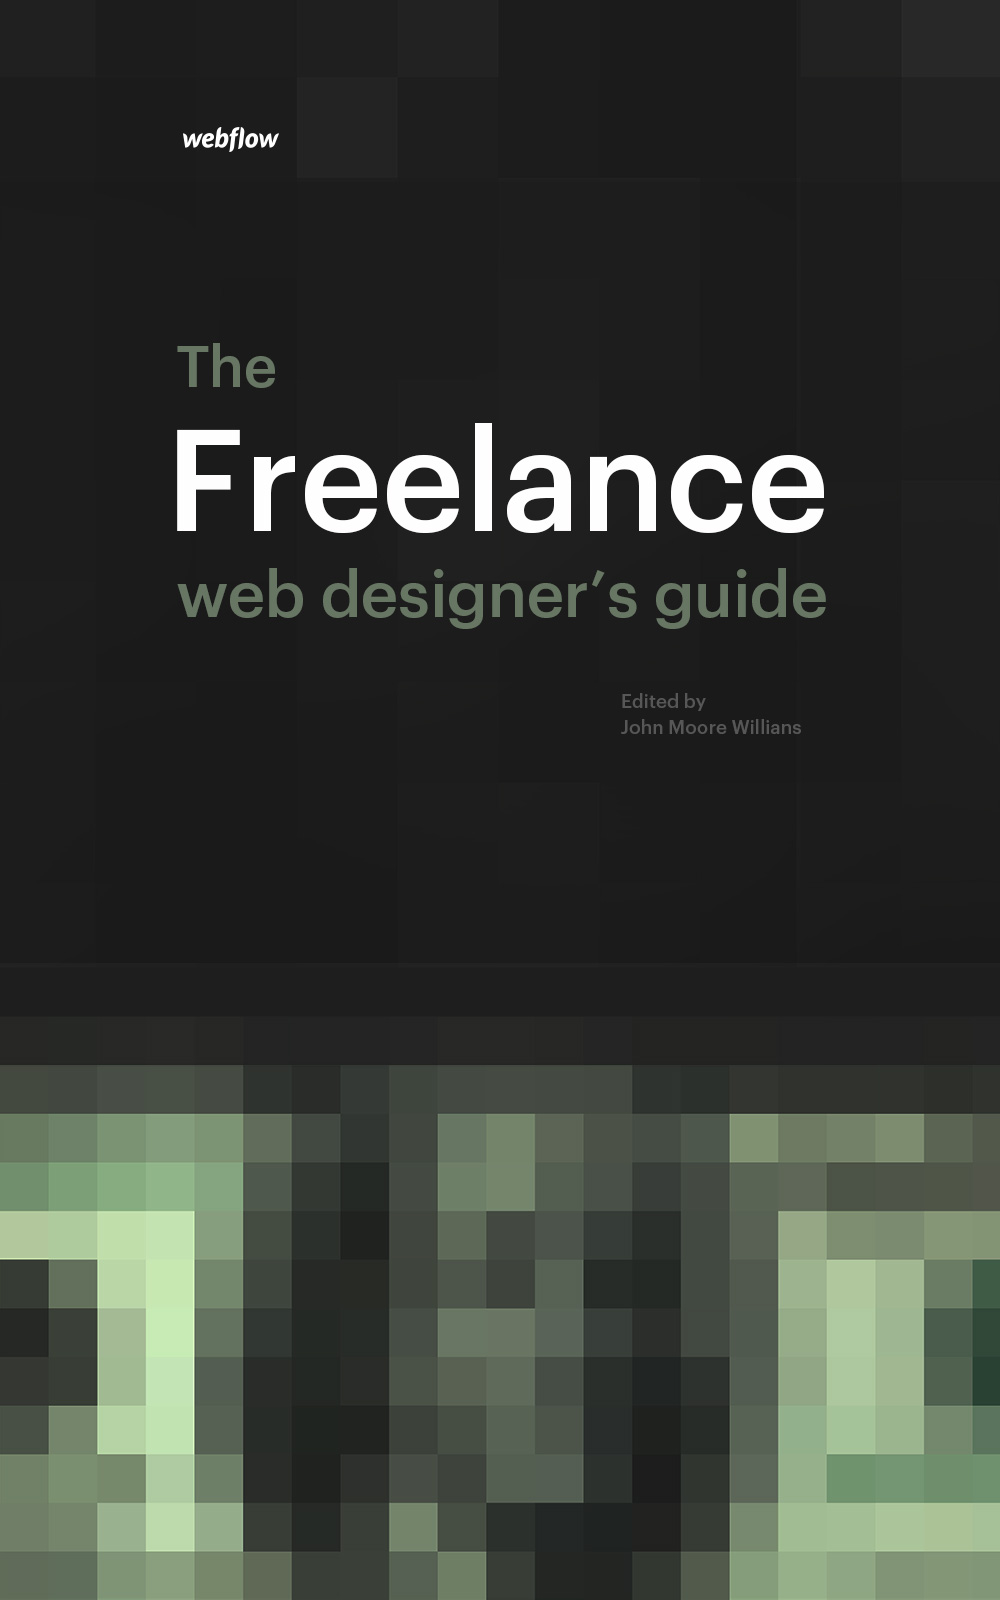 The freelance web designer's guide